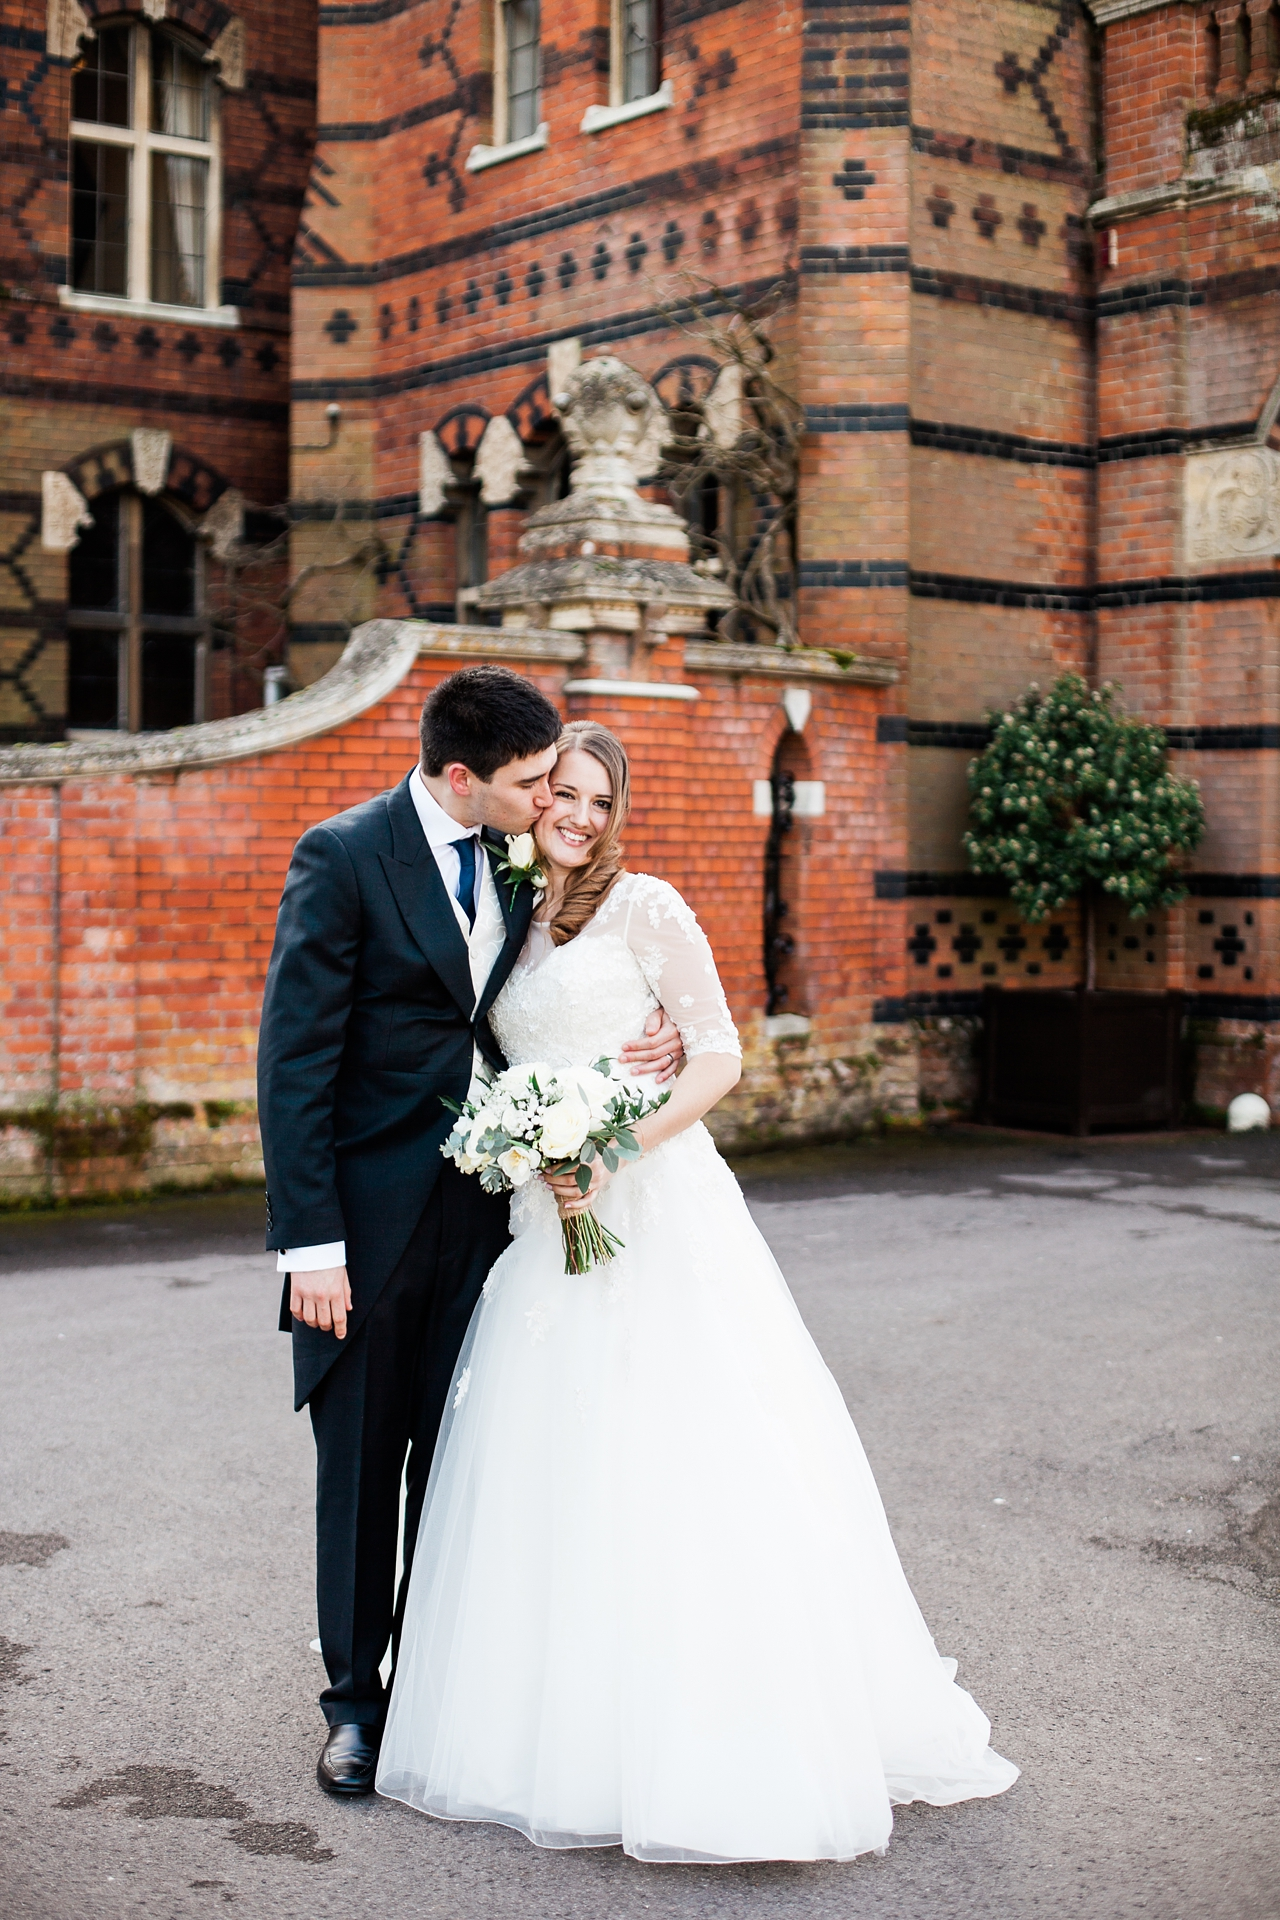 Bride and Groom happy at The Elvetham